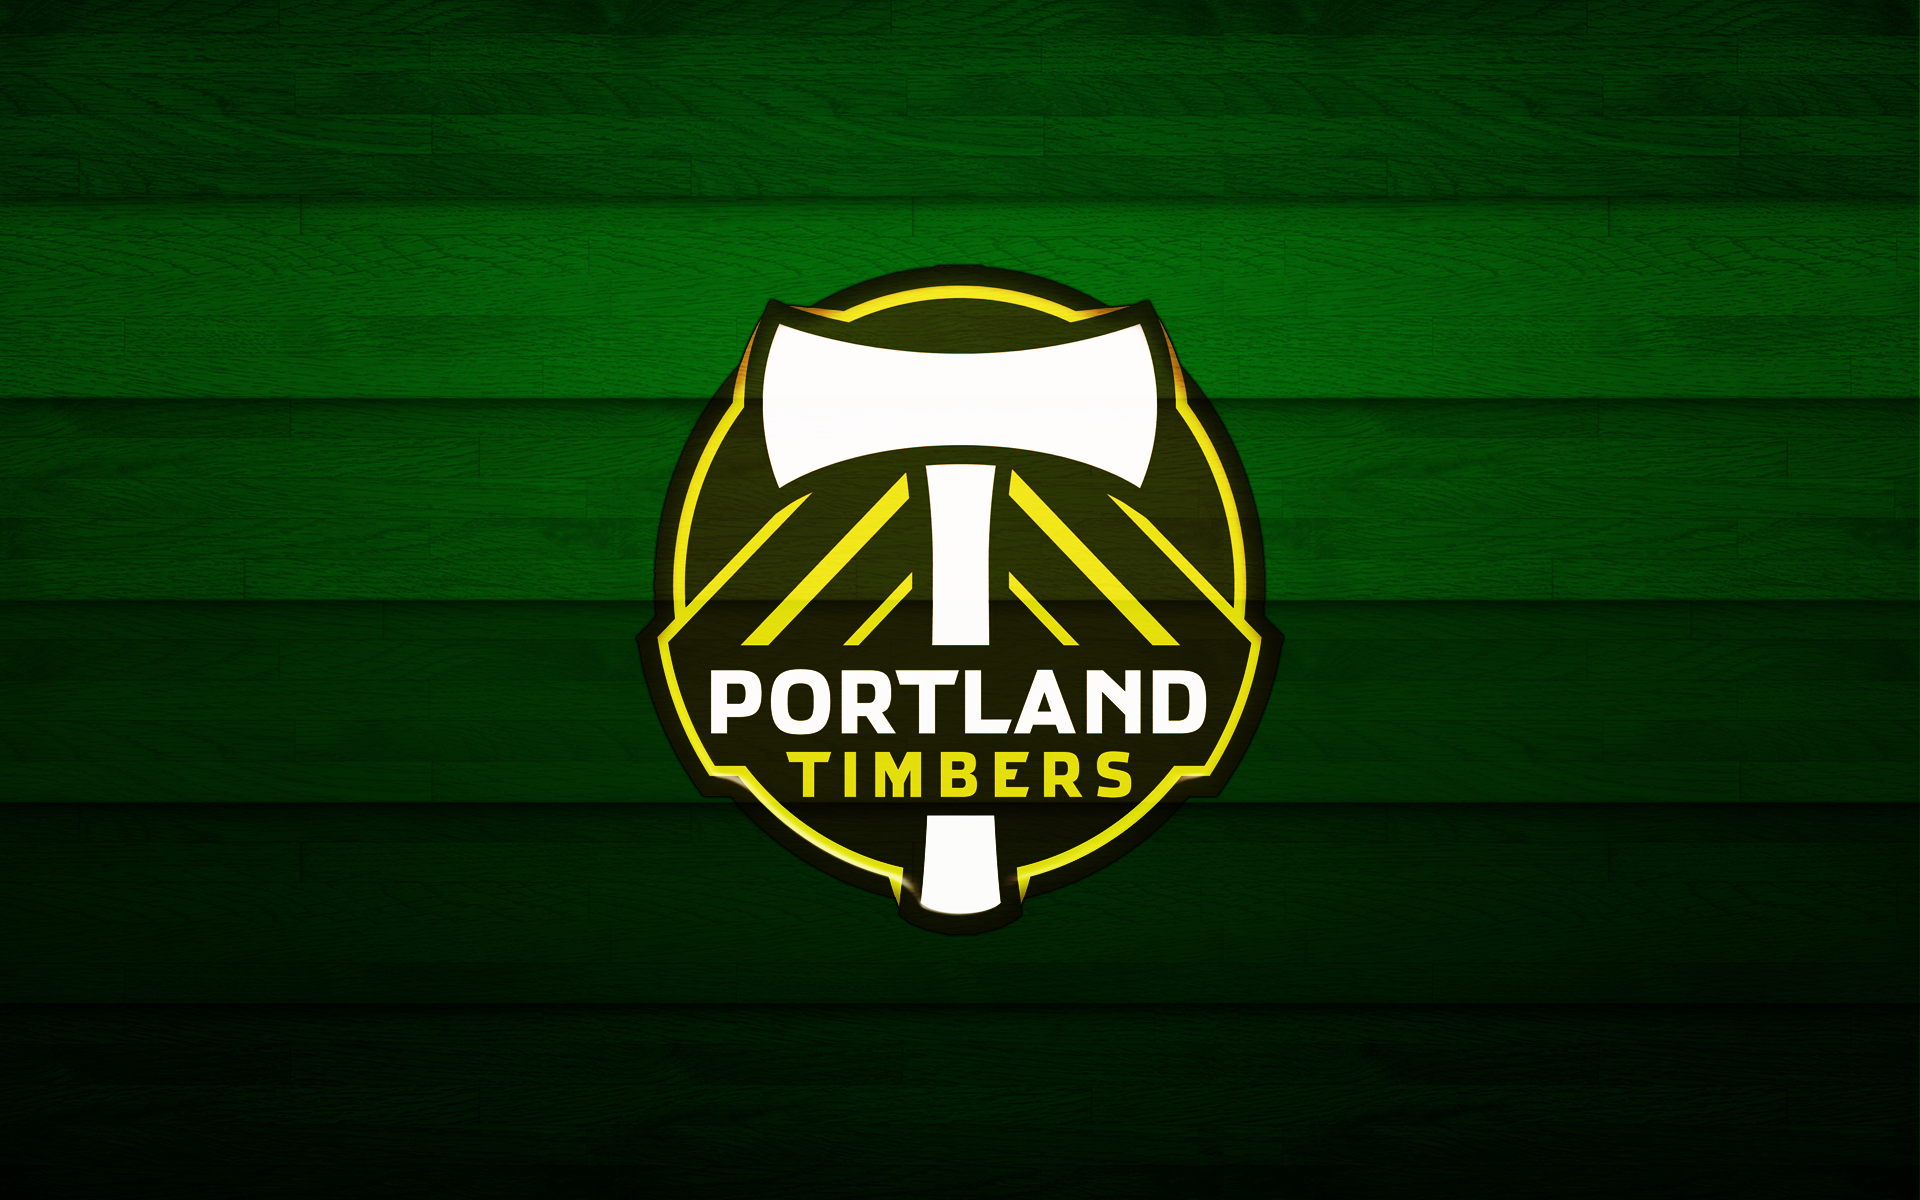 Portland Timbers Wood Wallpaper Full HD And Background